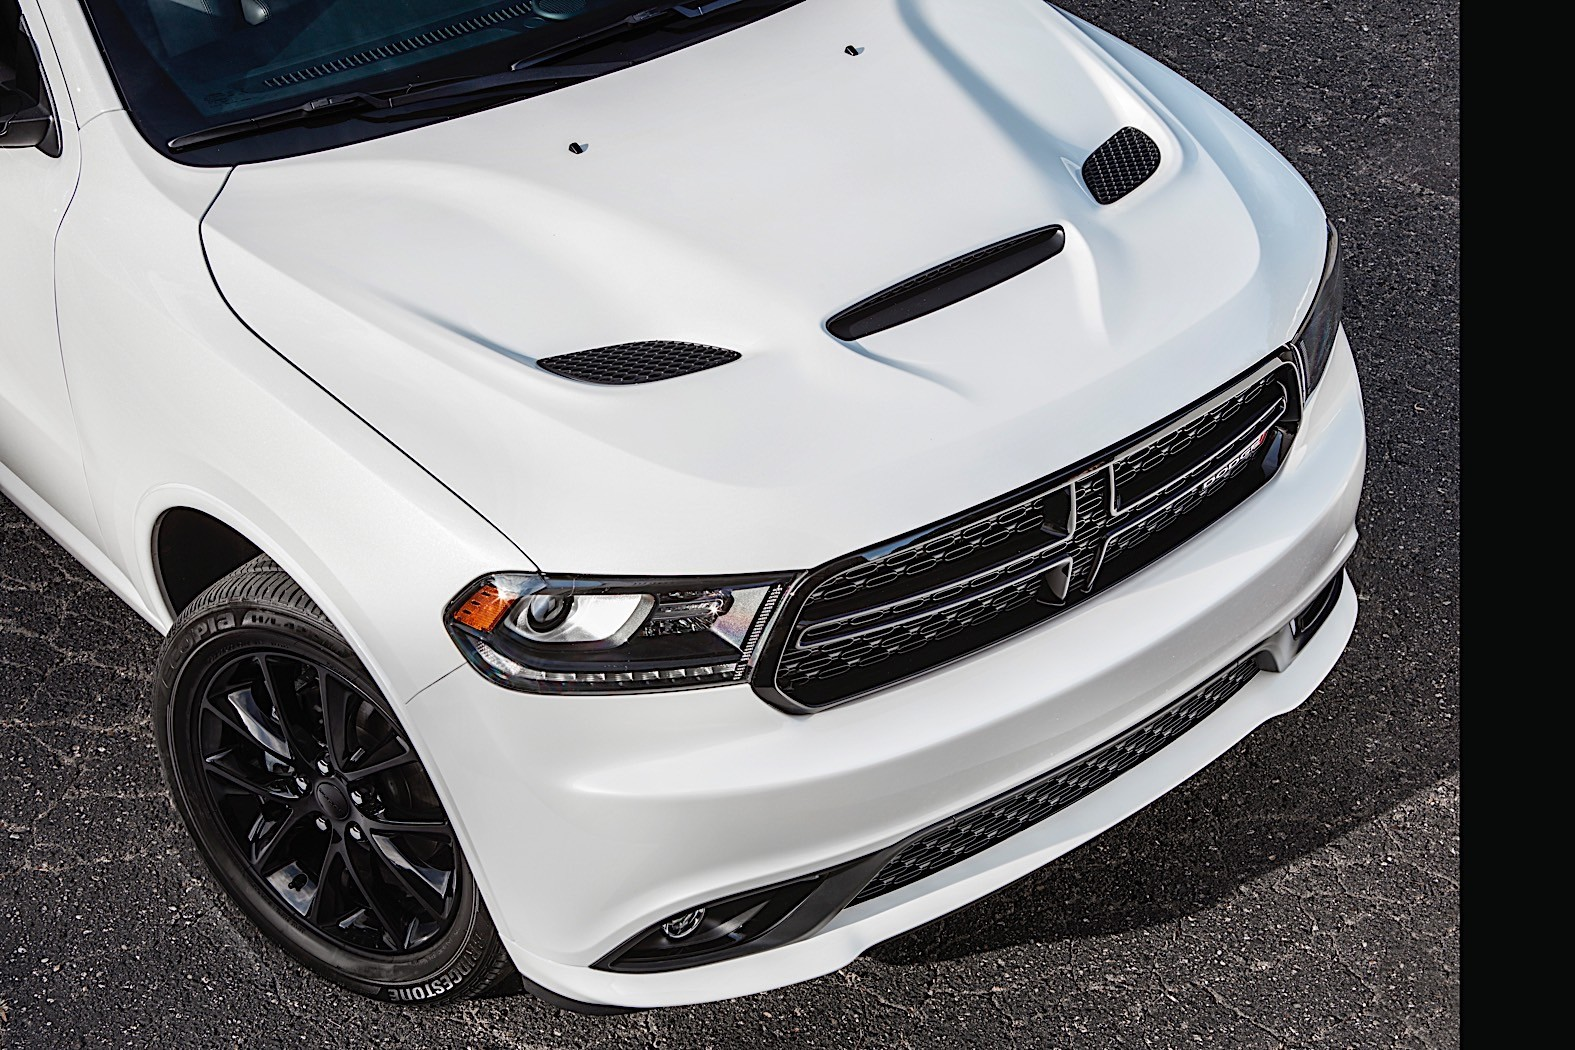 Dodge Durango Upgrade Packages Add Super Cool Features For Little Coin